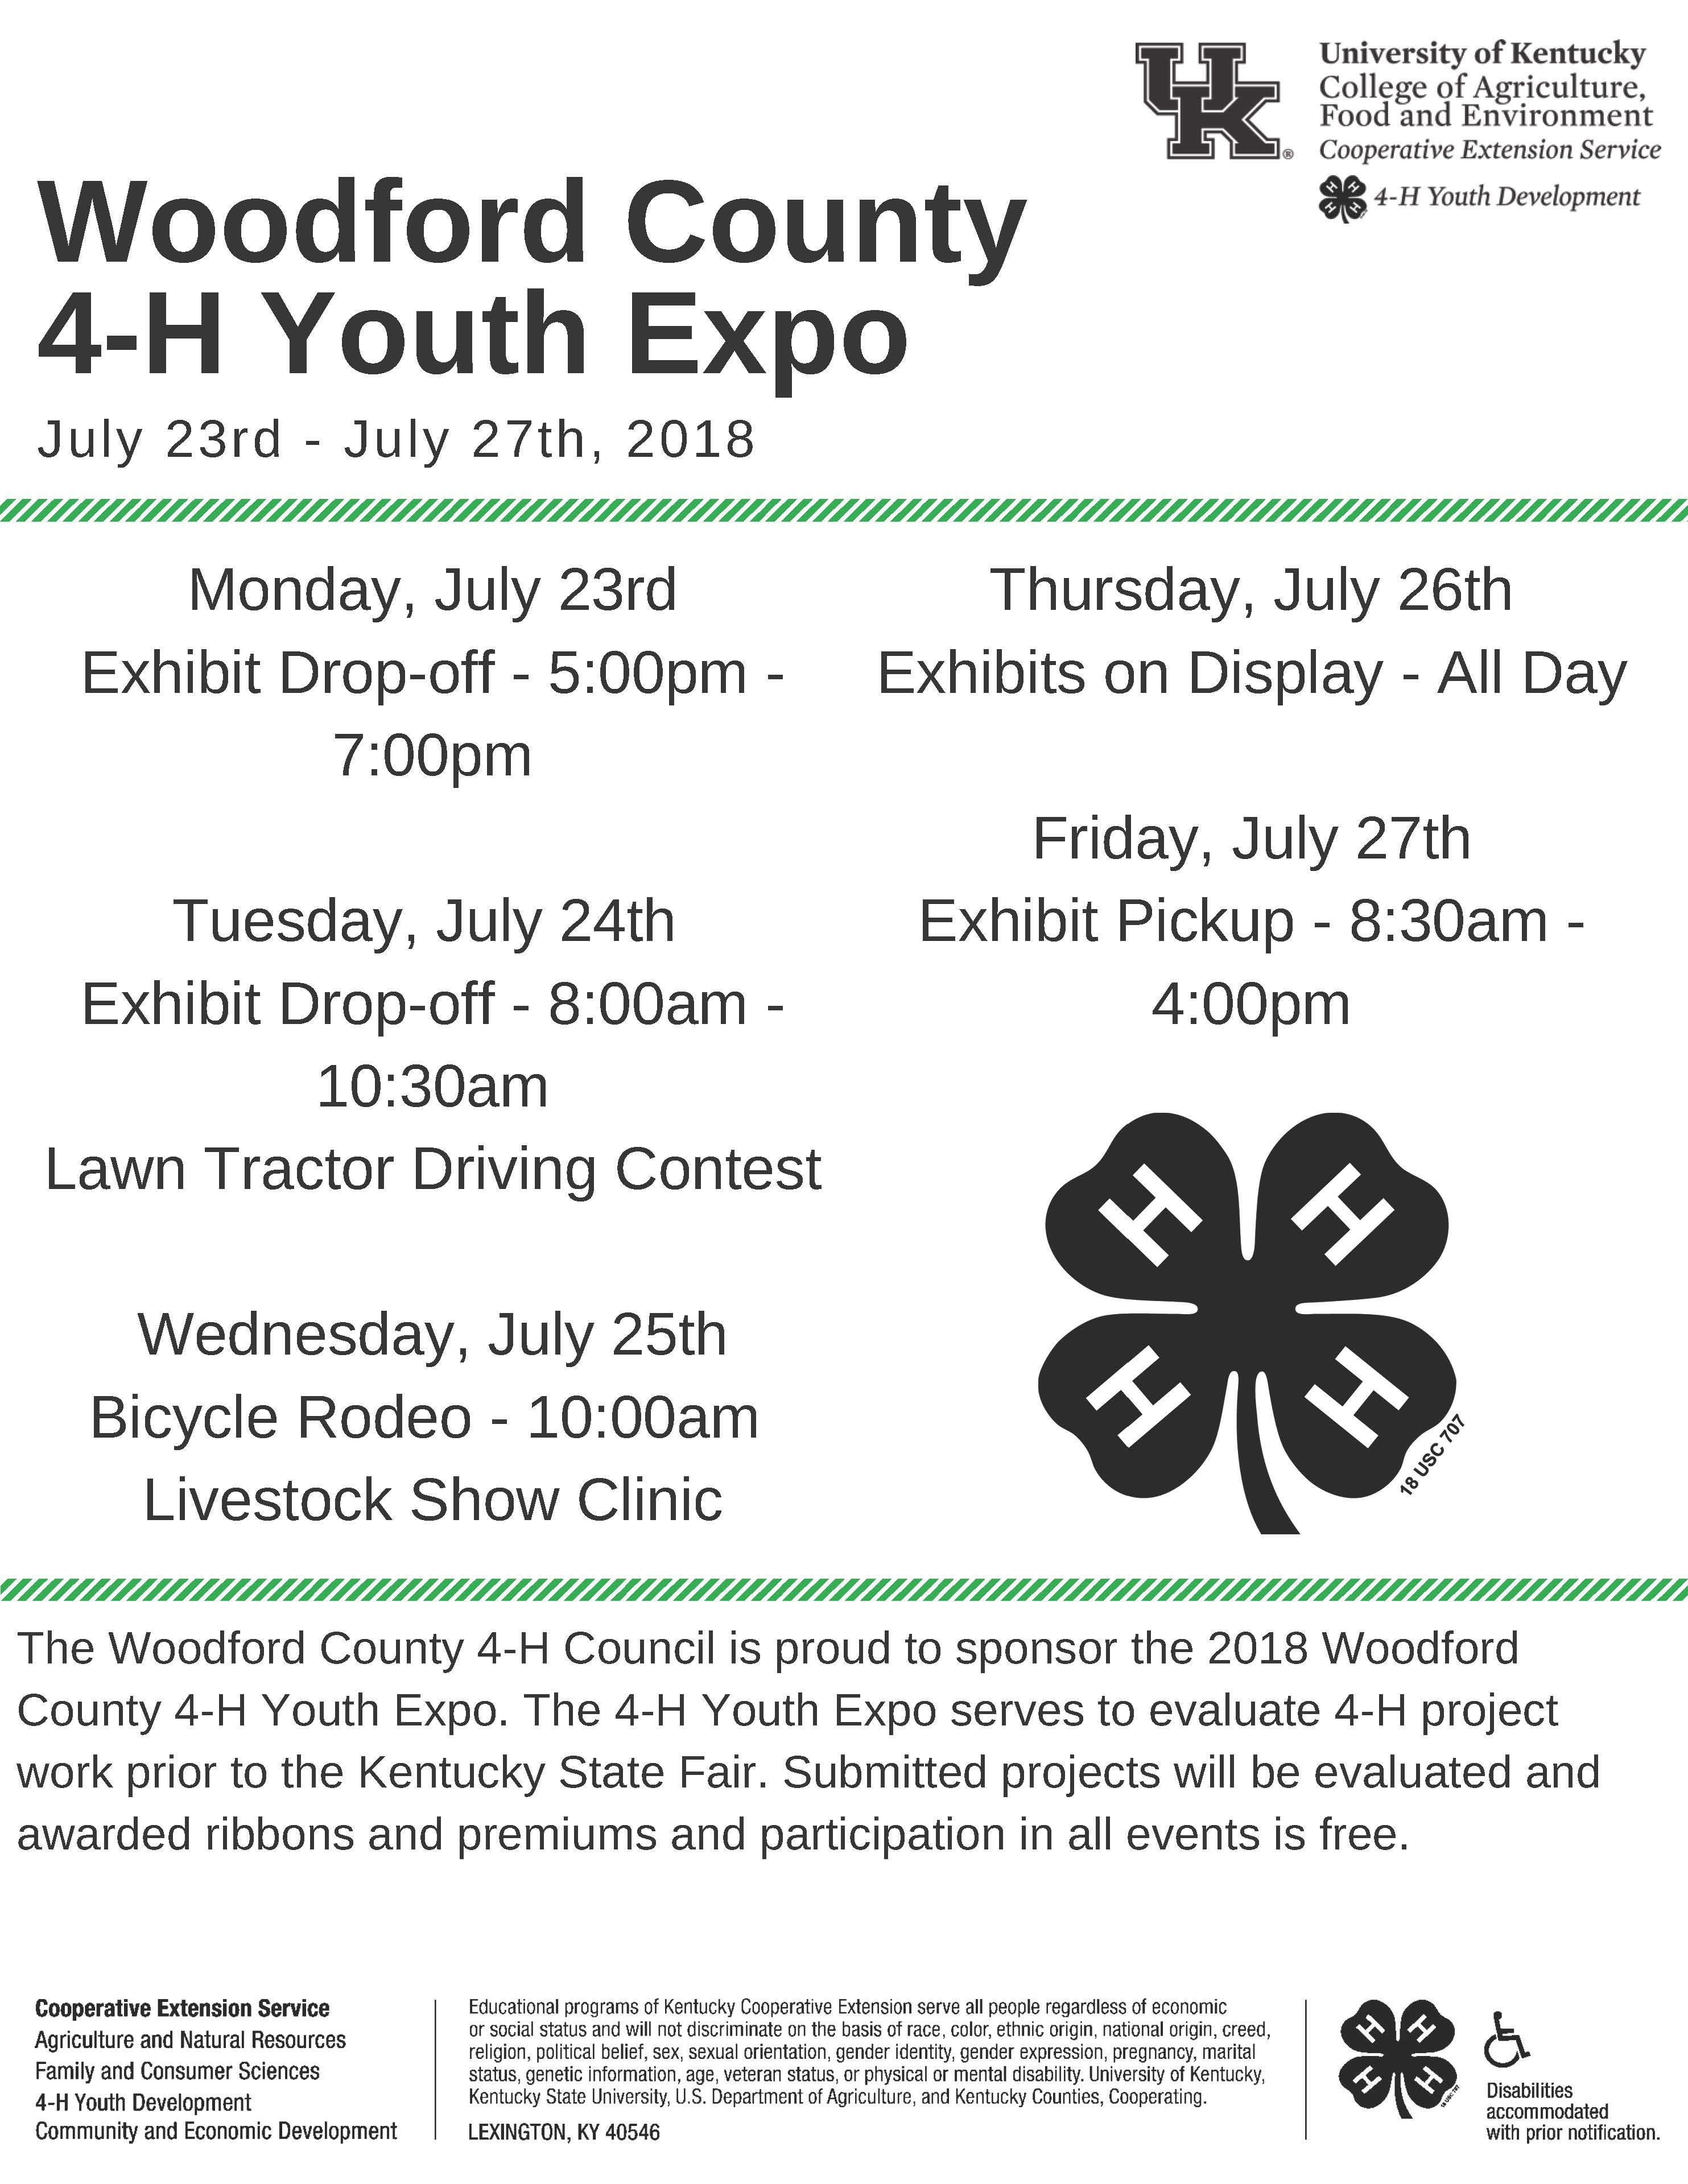 Woodford County 4-H Youth Expo | Woodford County